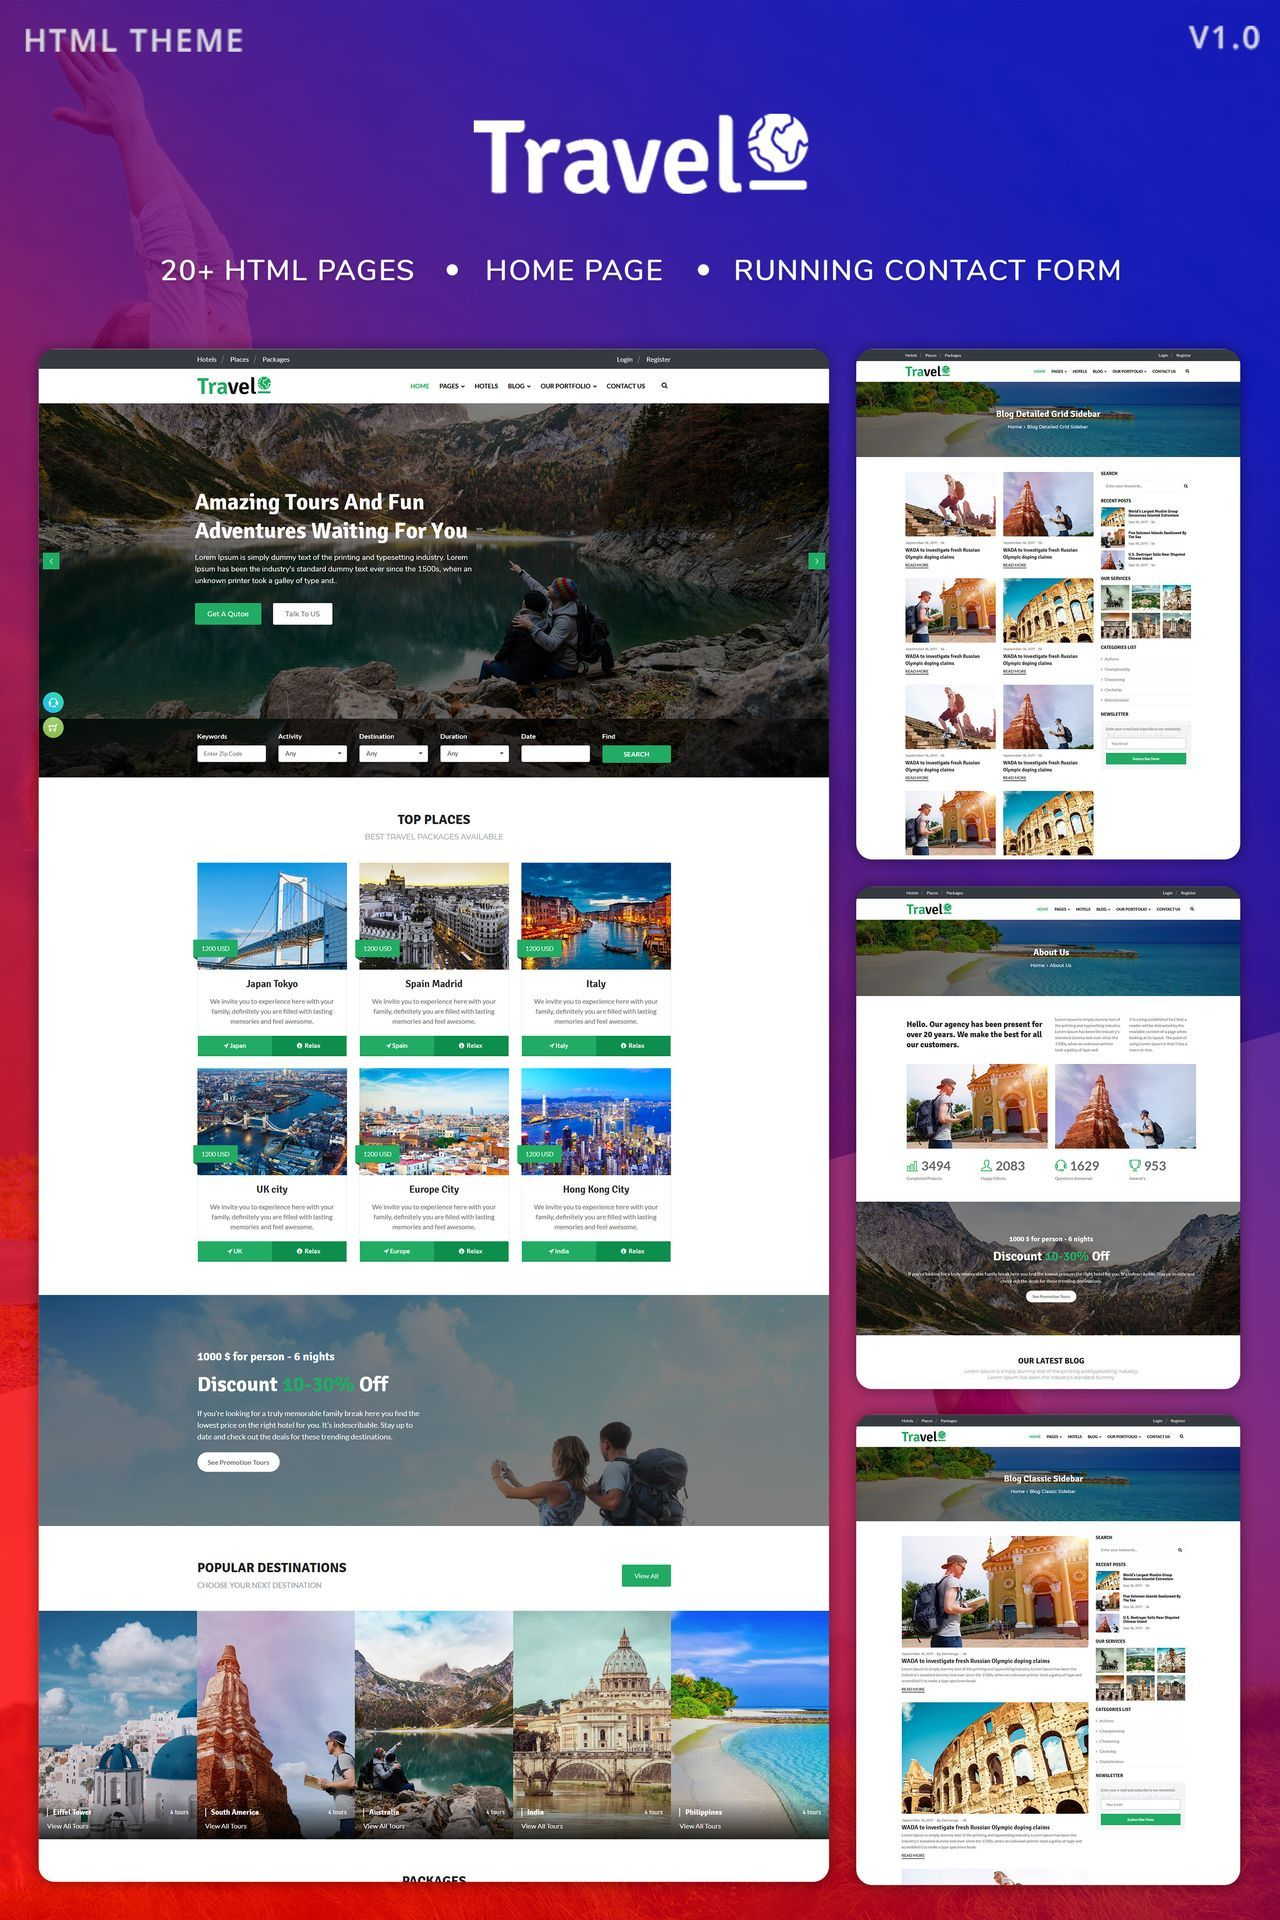 travelo tour travel agency website template new website